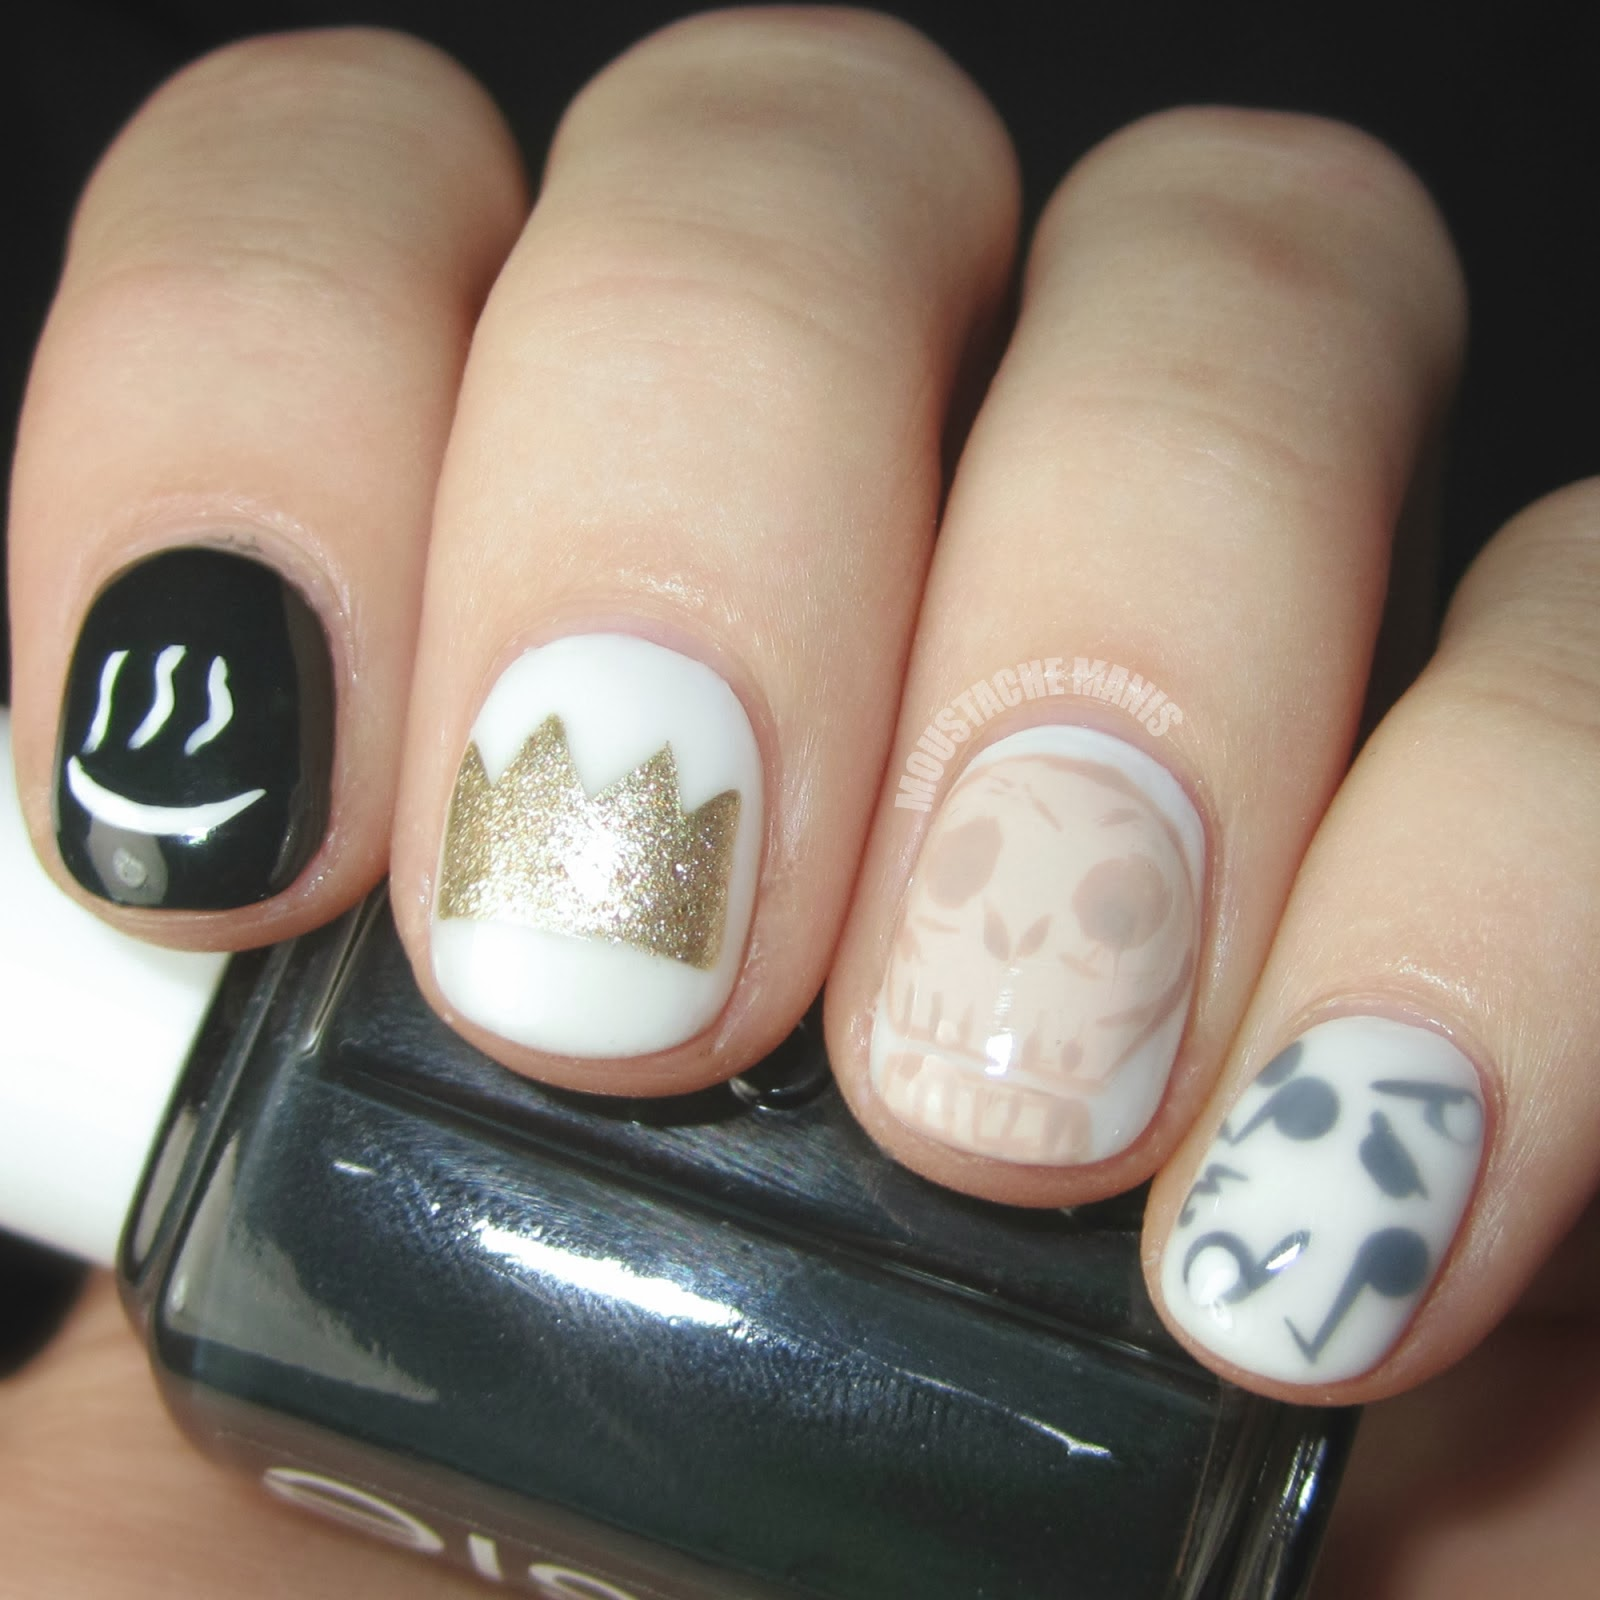 One Hundred Styles: Music Notation Nail Art Designs